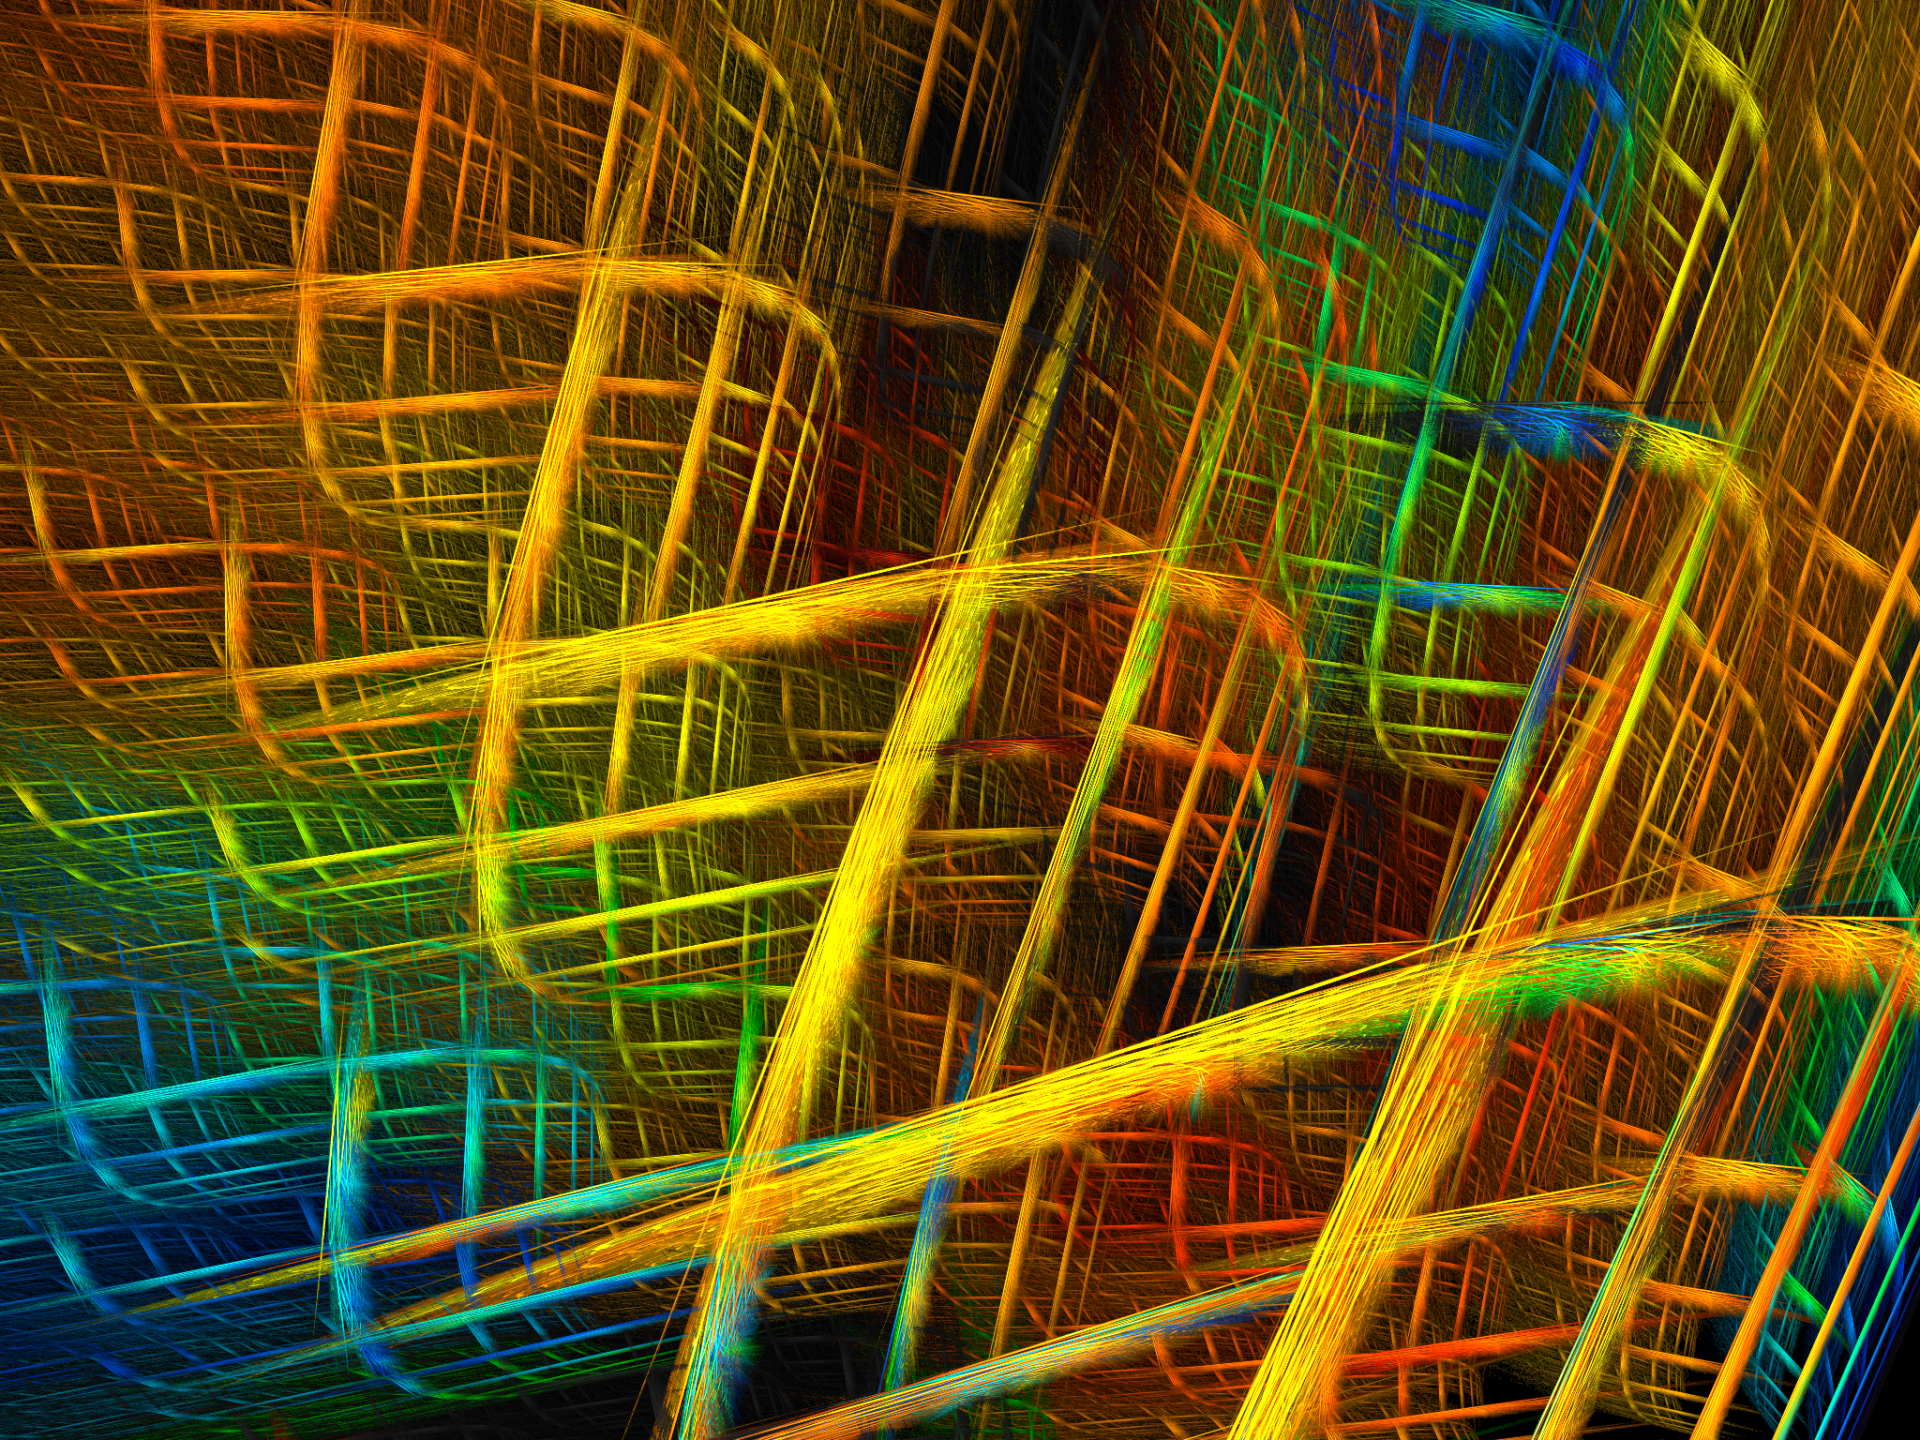 Abstract - Fractal  Abstract Apophysis (software) Colorful Lines Digital Art Artistic Wallpaper